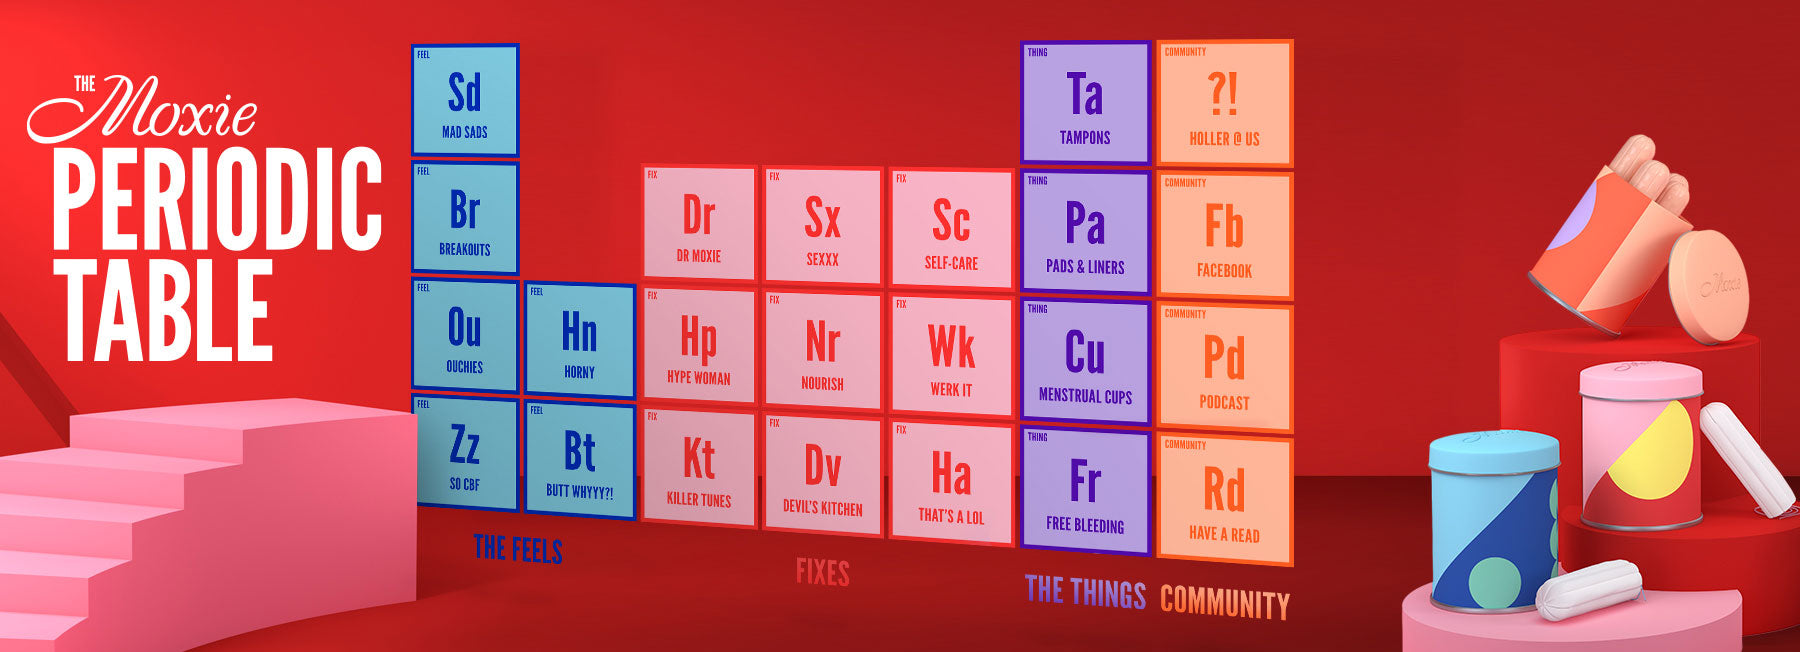 The Moxie Periodic Table - period and intimate health support